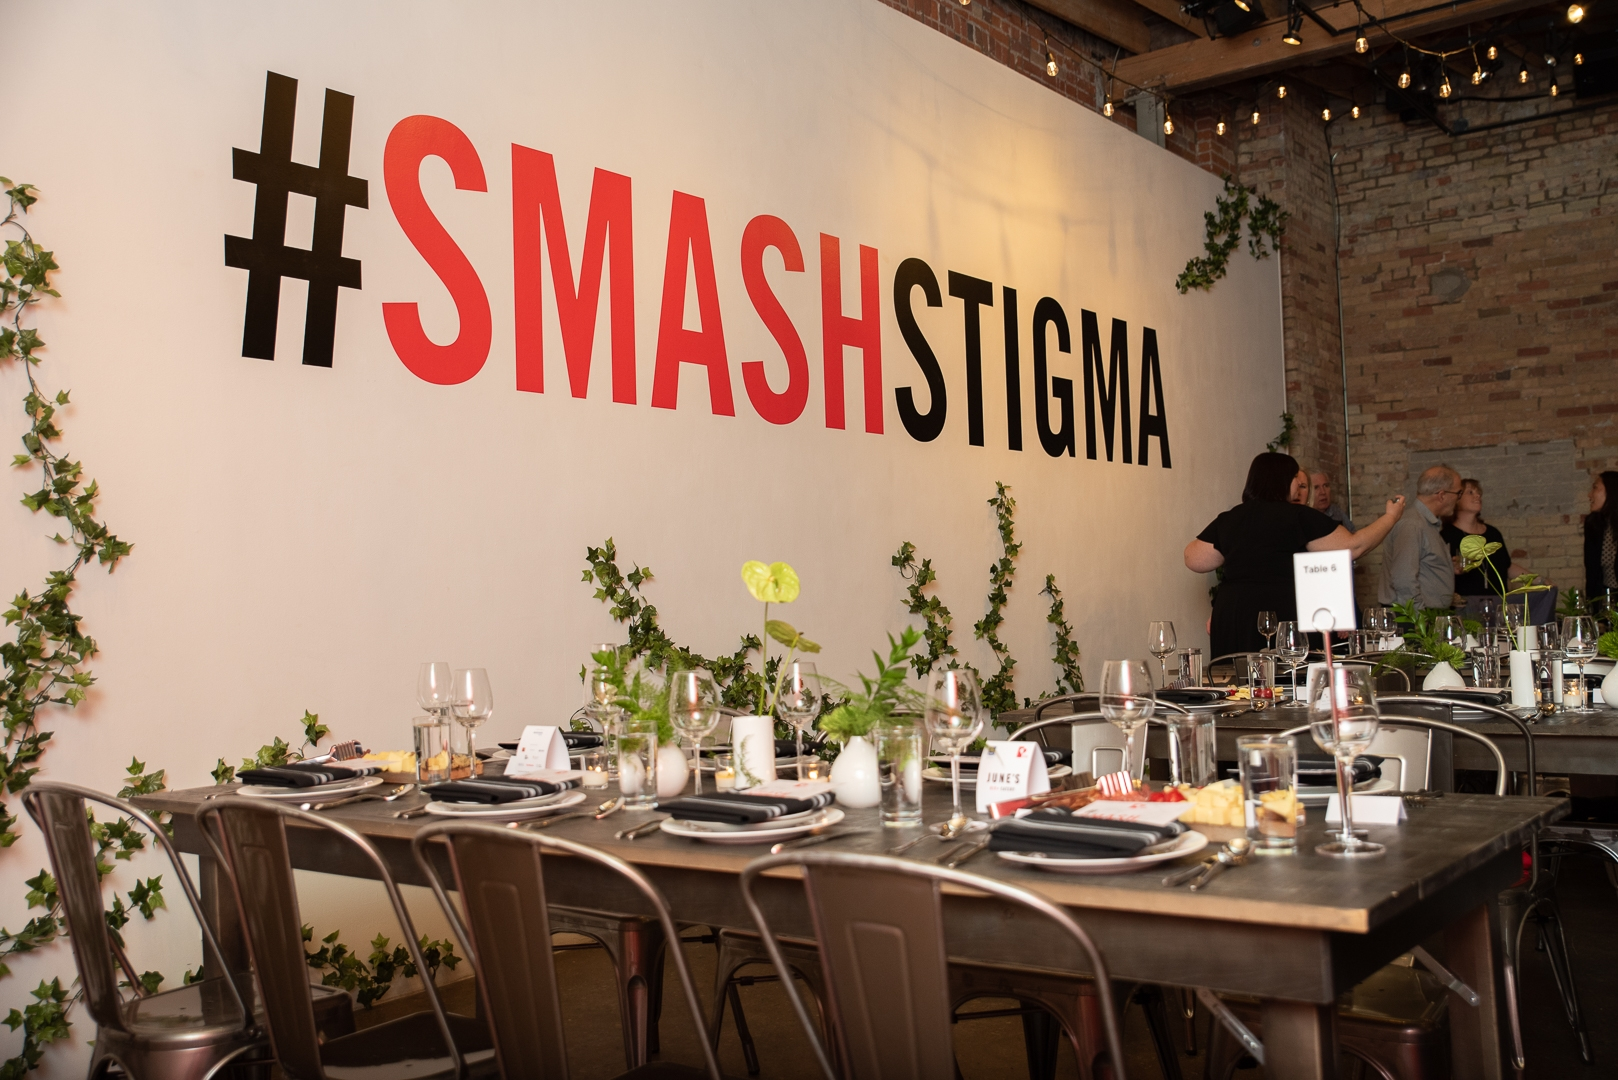 Smash Stigma Event - Industrial Chair and Black-wash Harvest Table